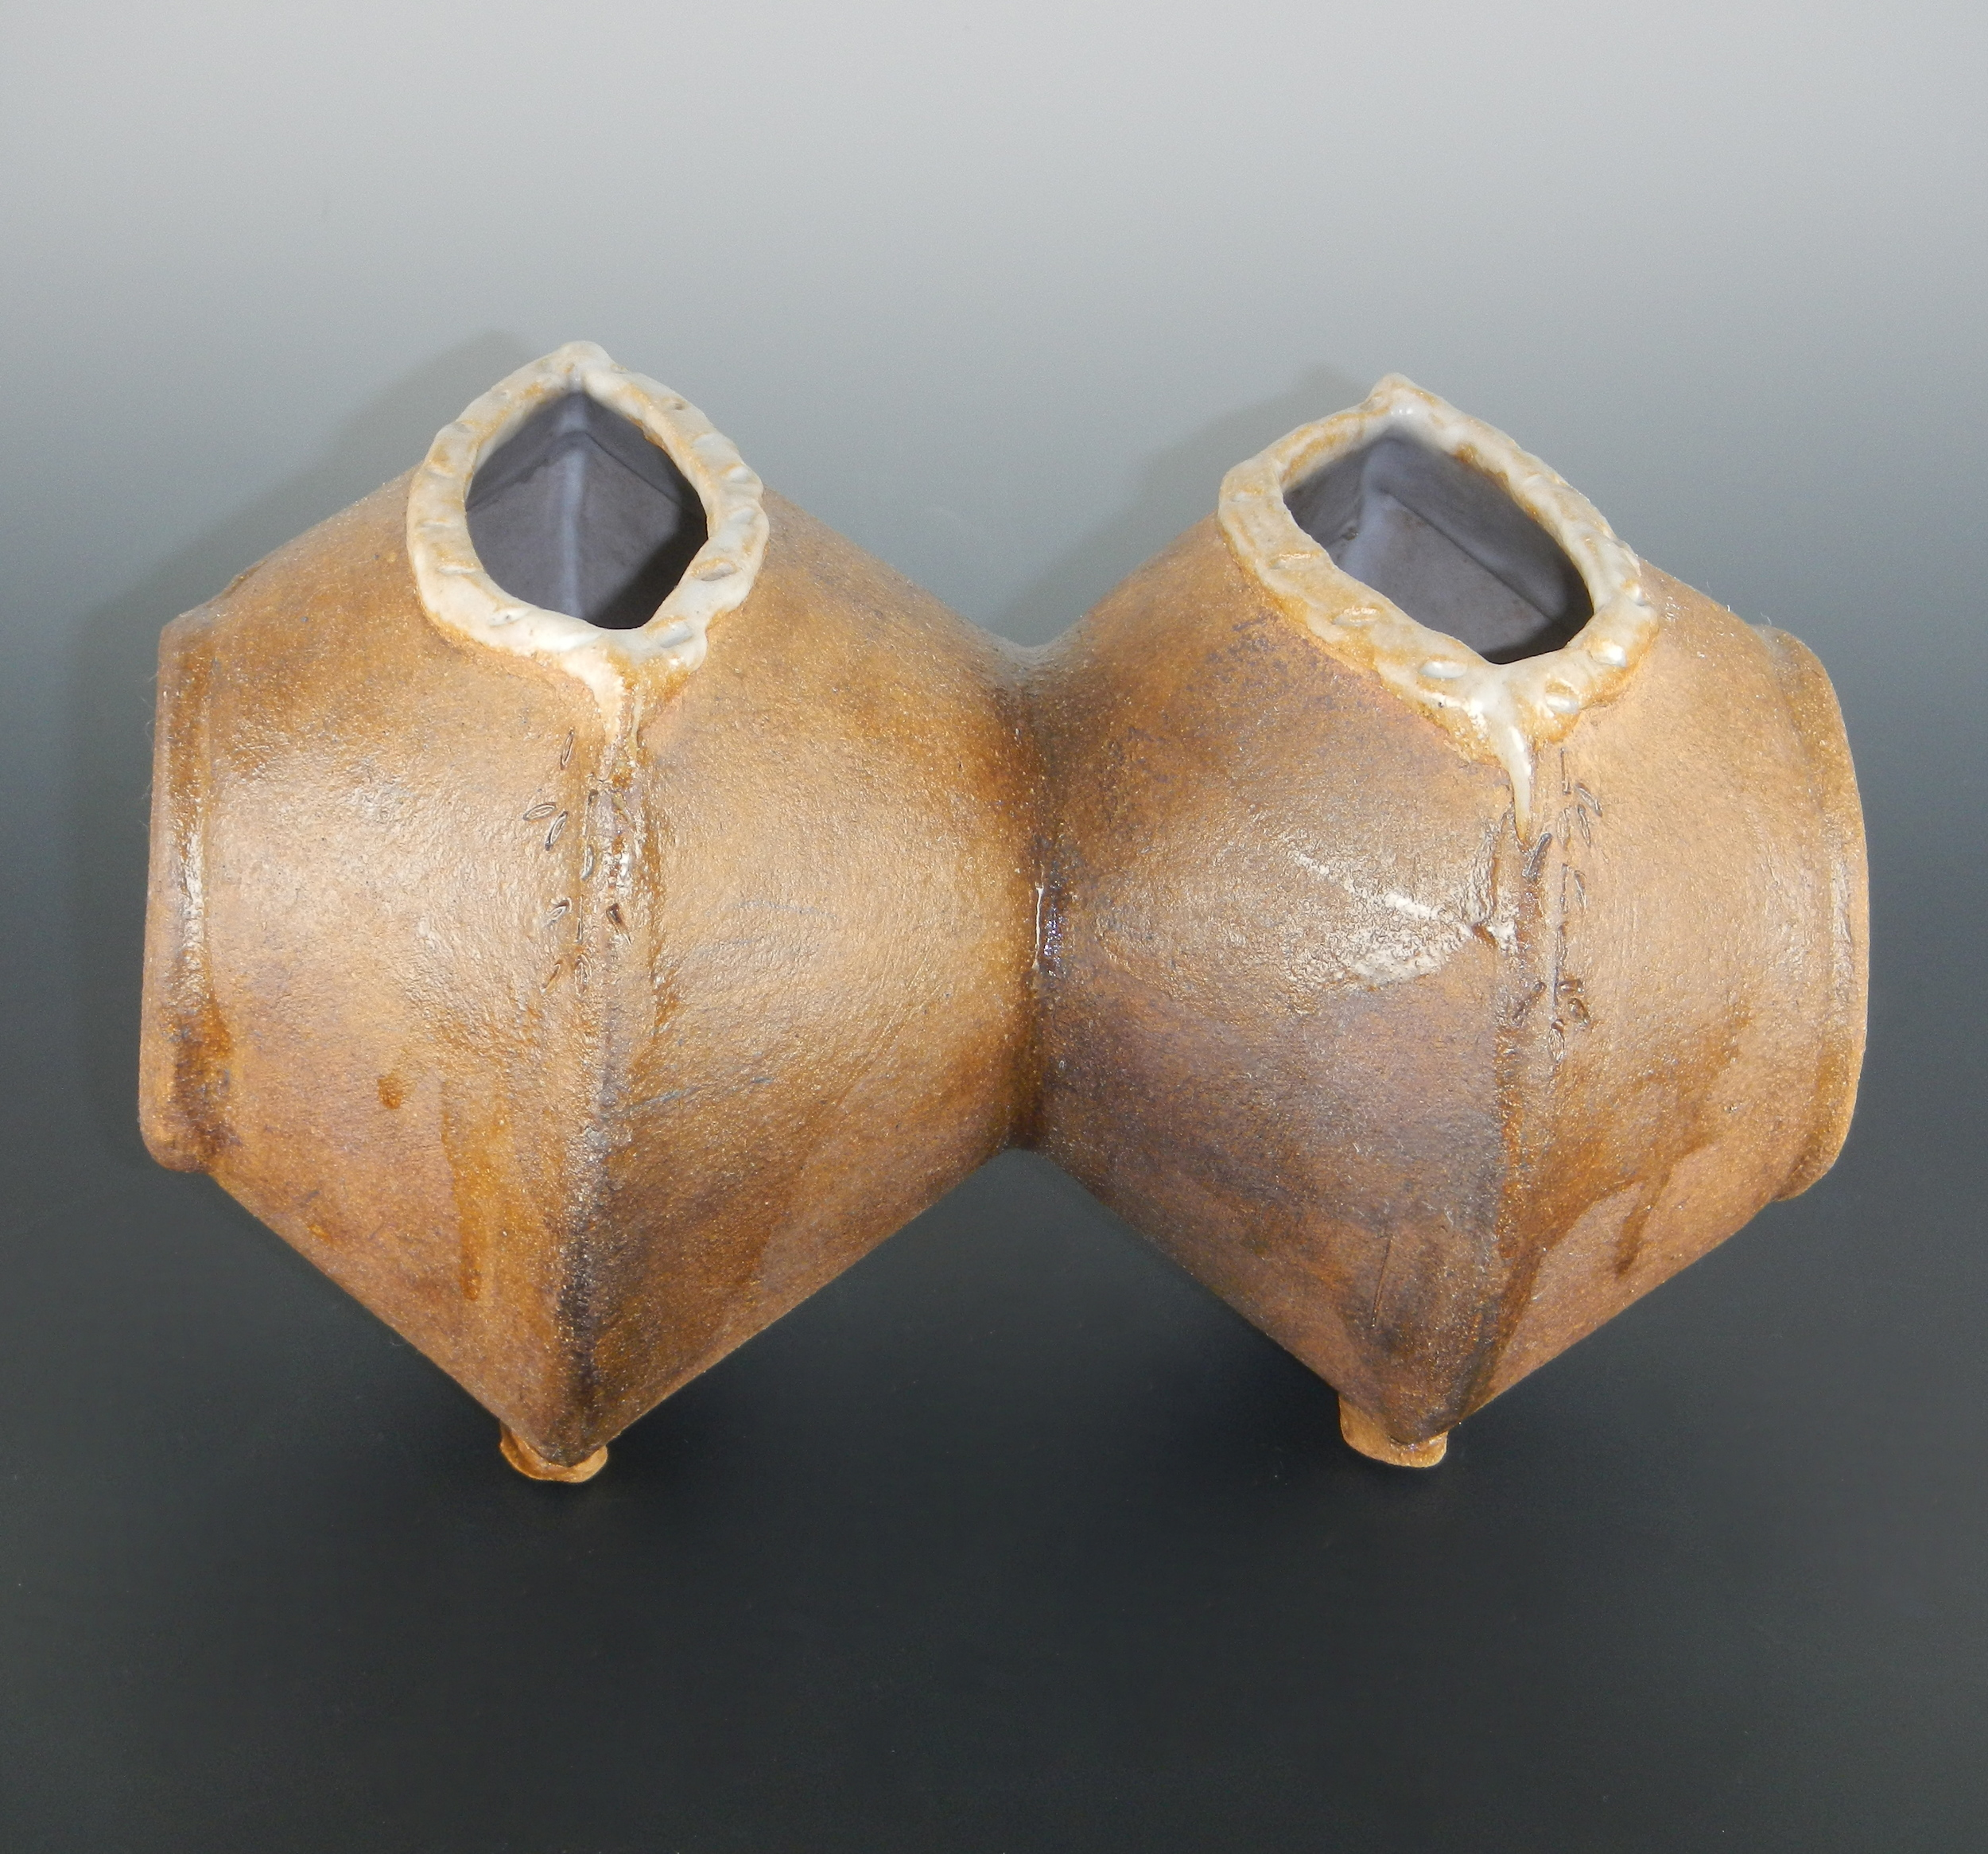 "(""Conjoined Vessels"", back view)"